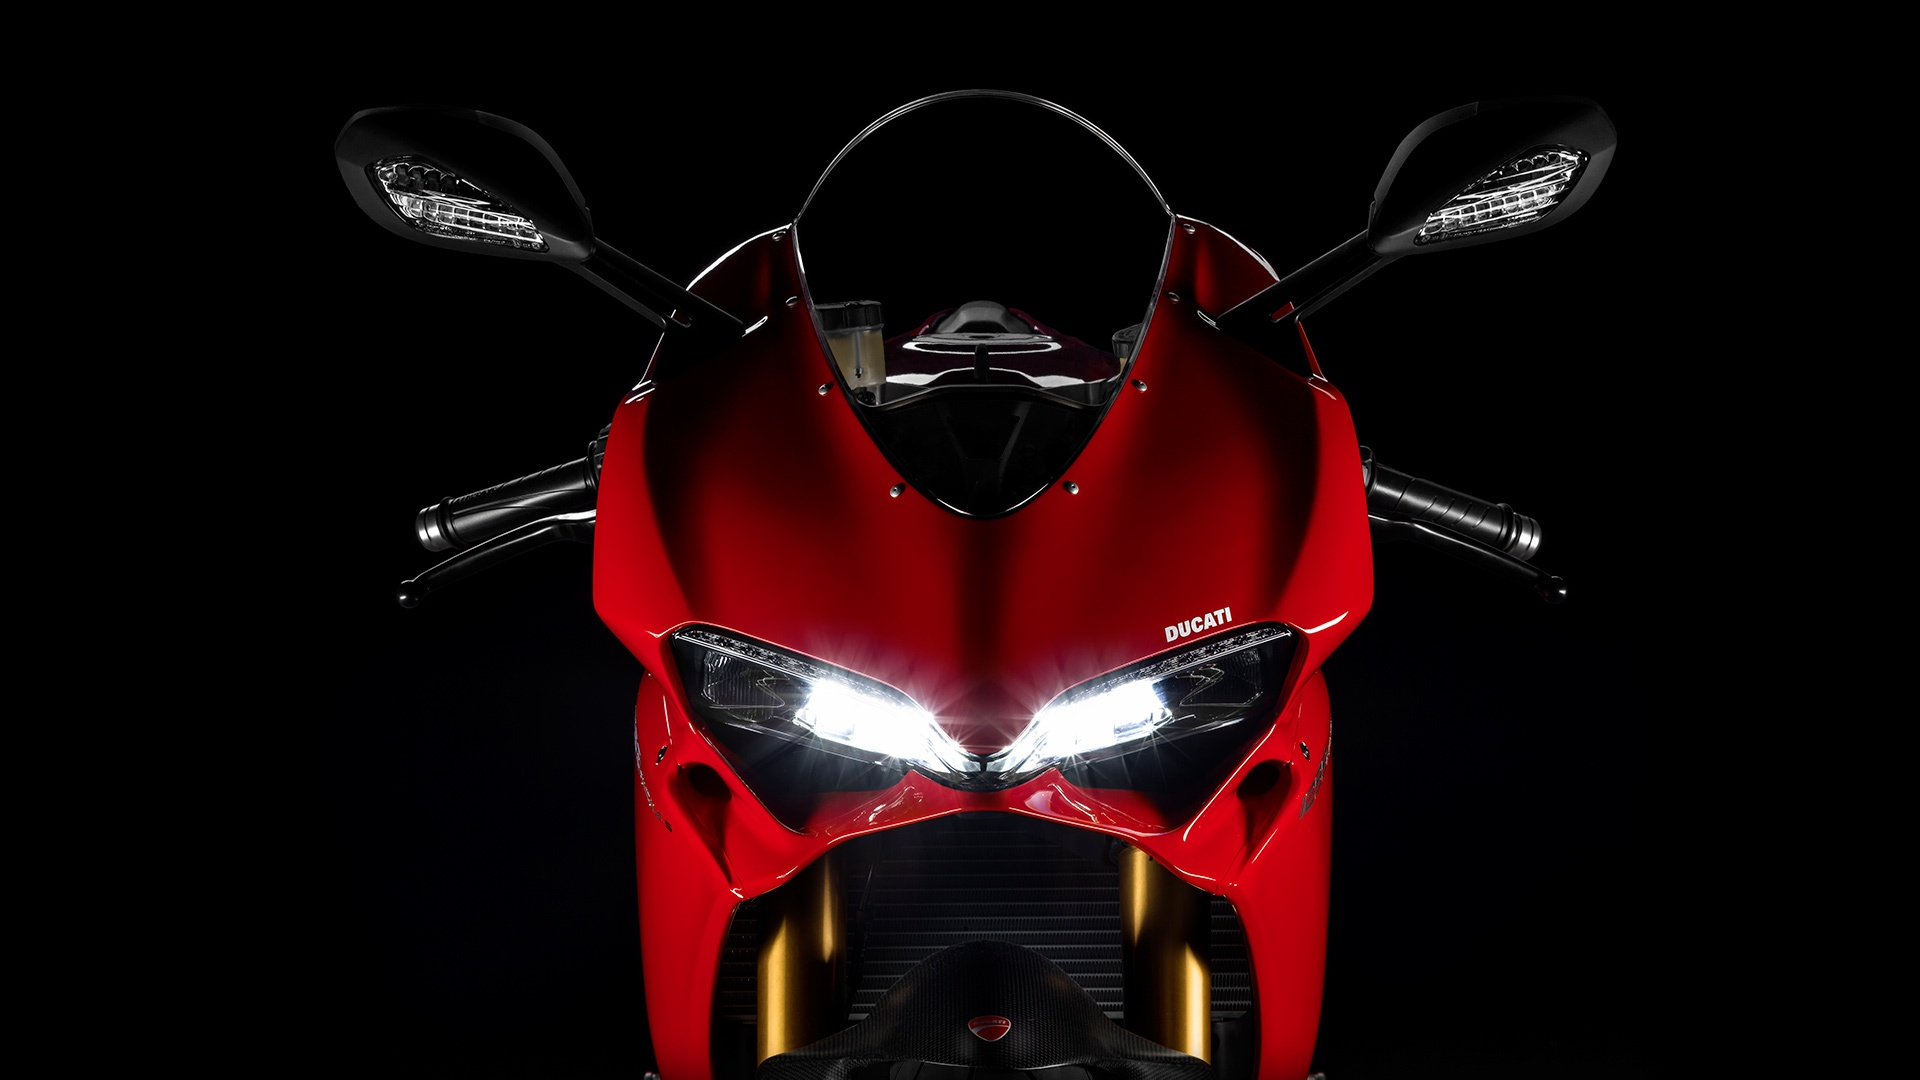 SBK-1299-Panigale-S_2015_Studio_R_A02_1920x1080_mediagallery_output_image_[1920x1080]